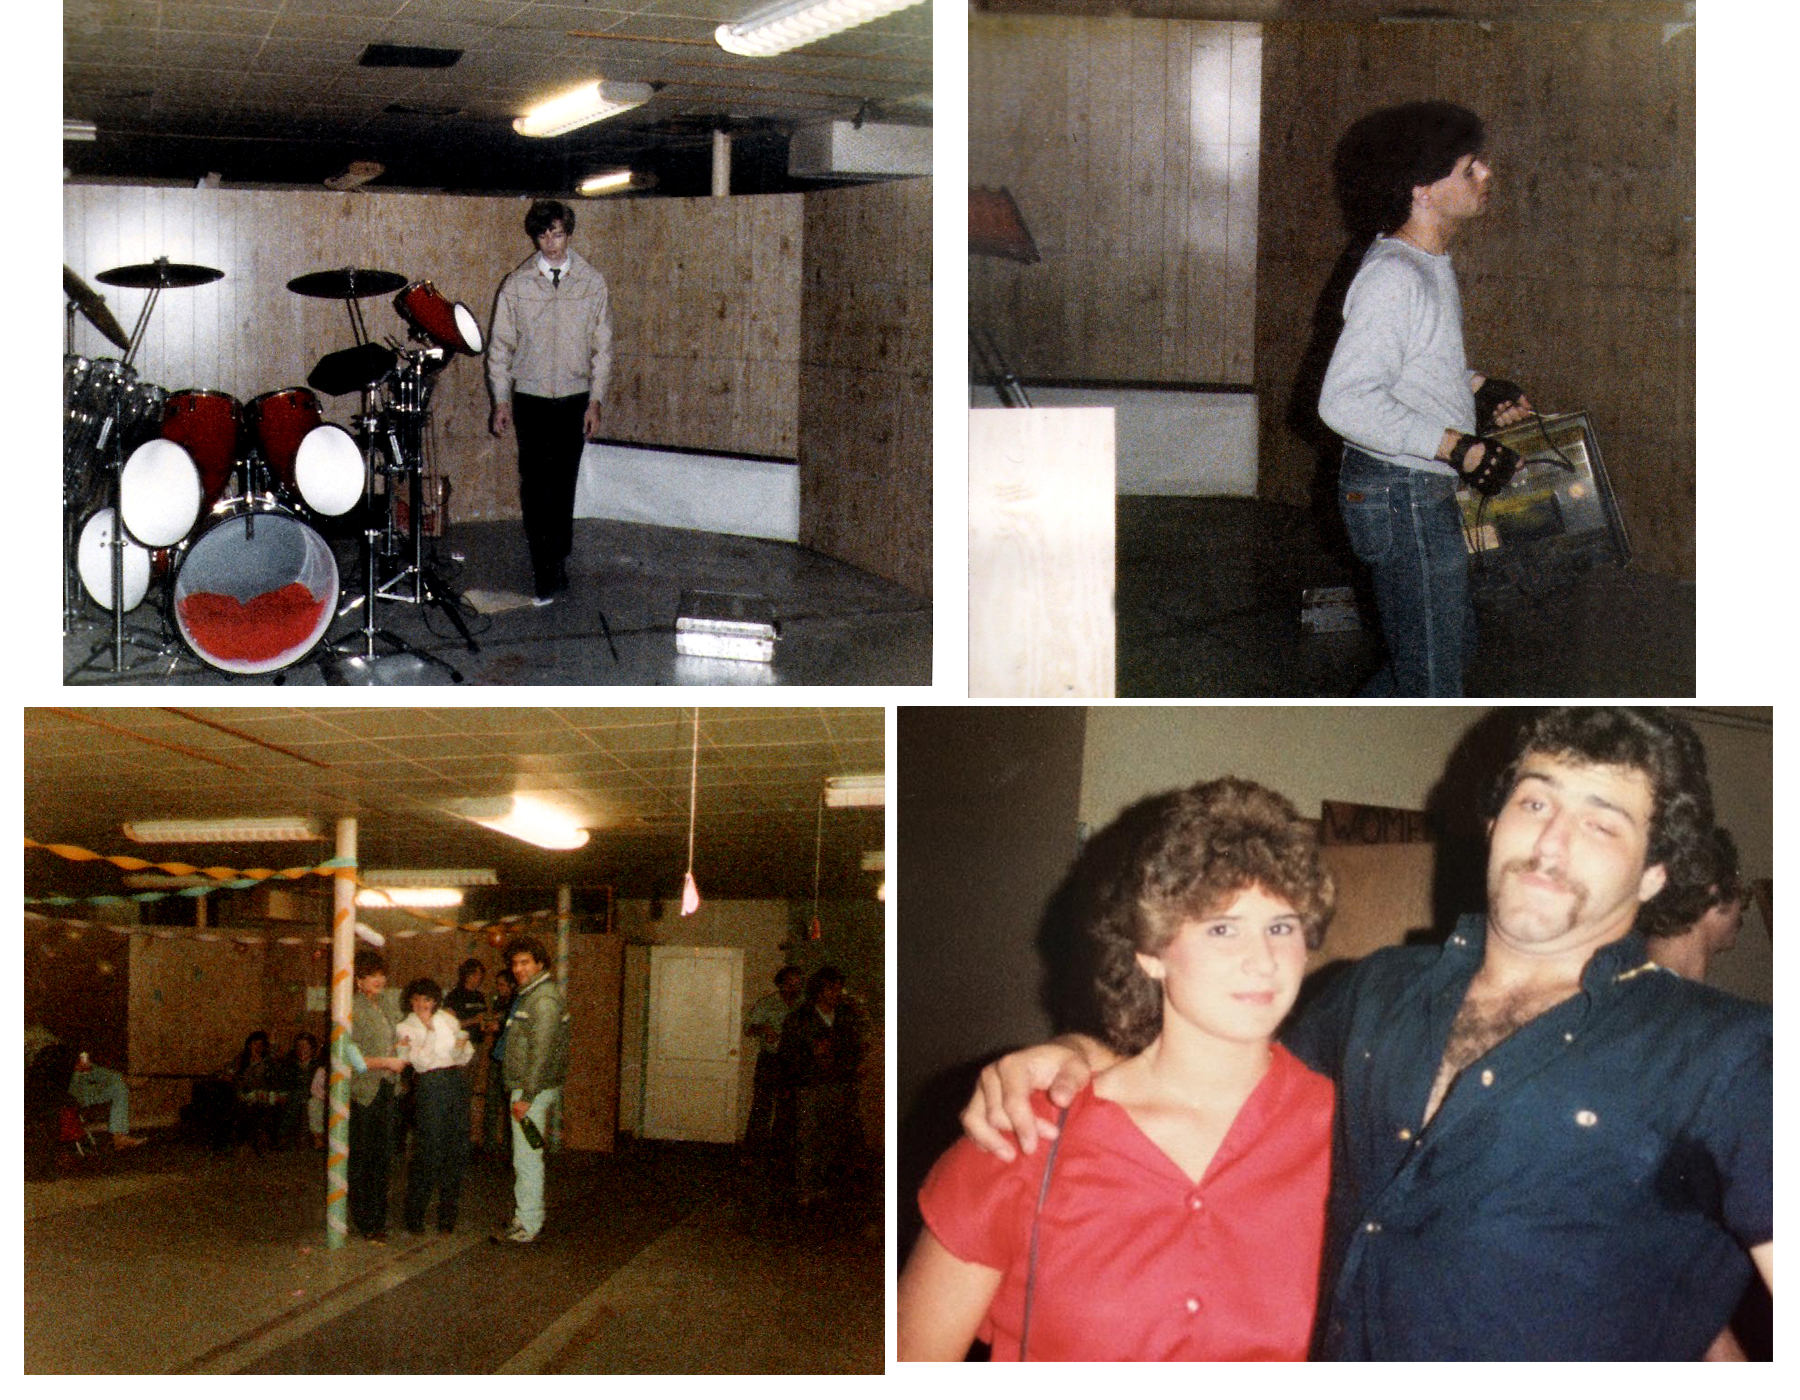 Moving out and cleaning up at The Chamber, September 1986